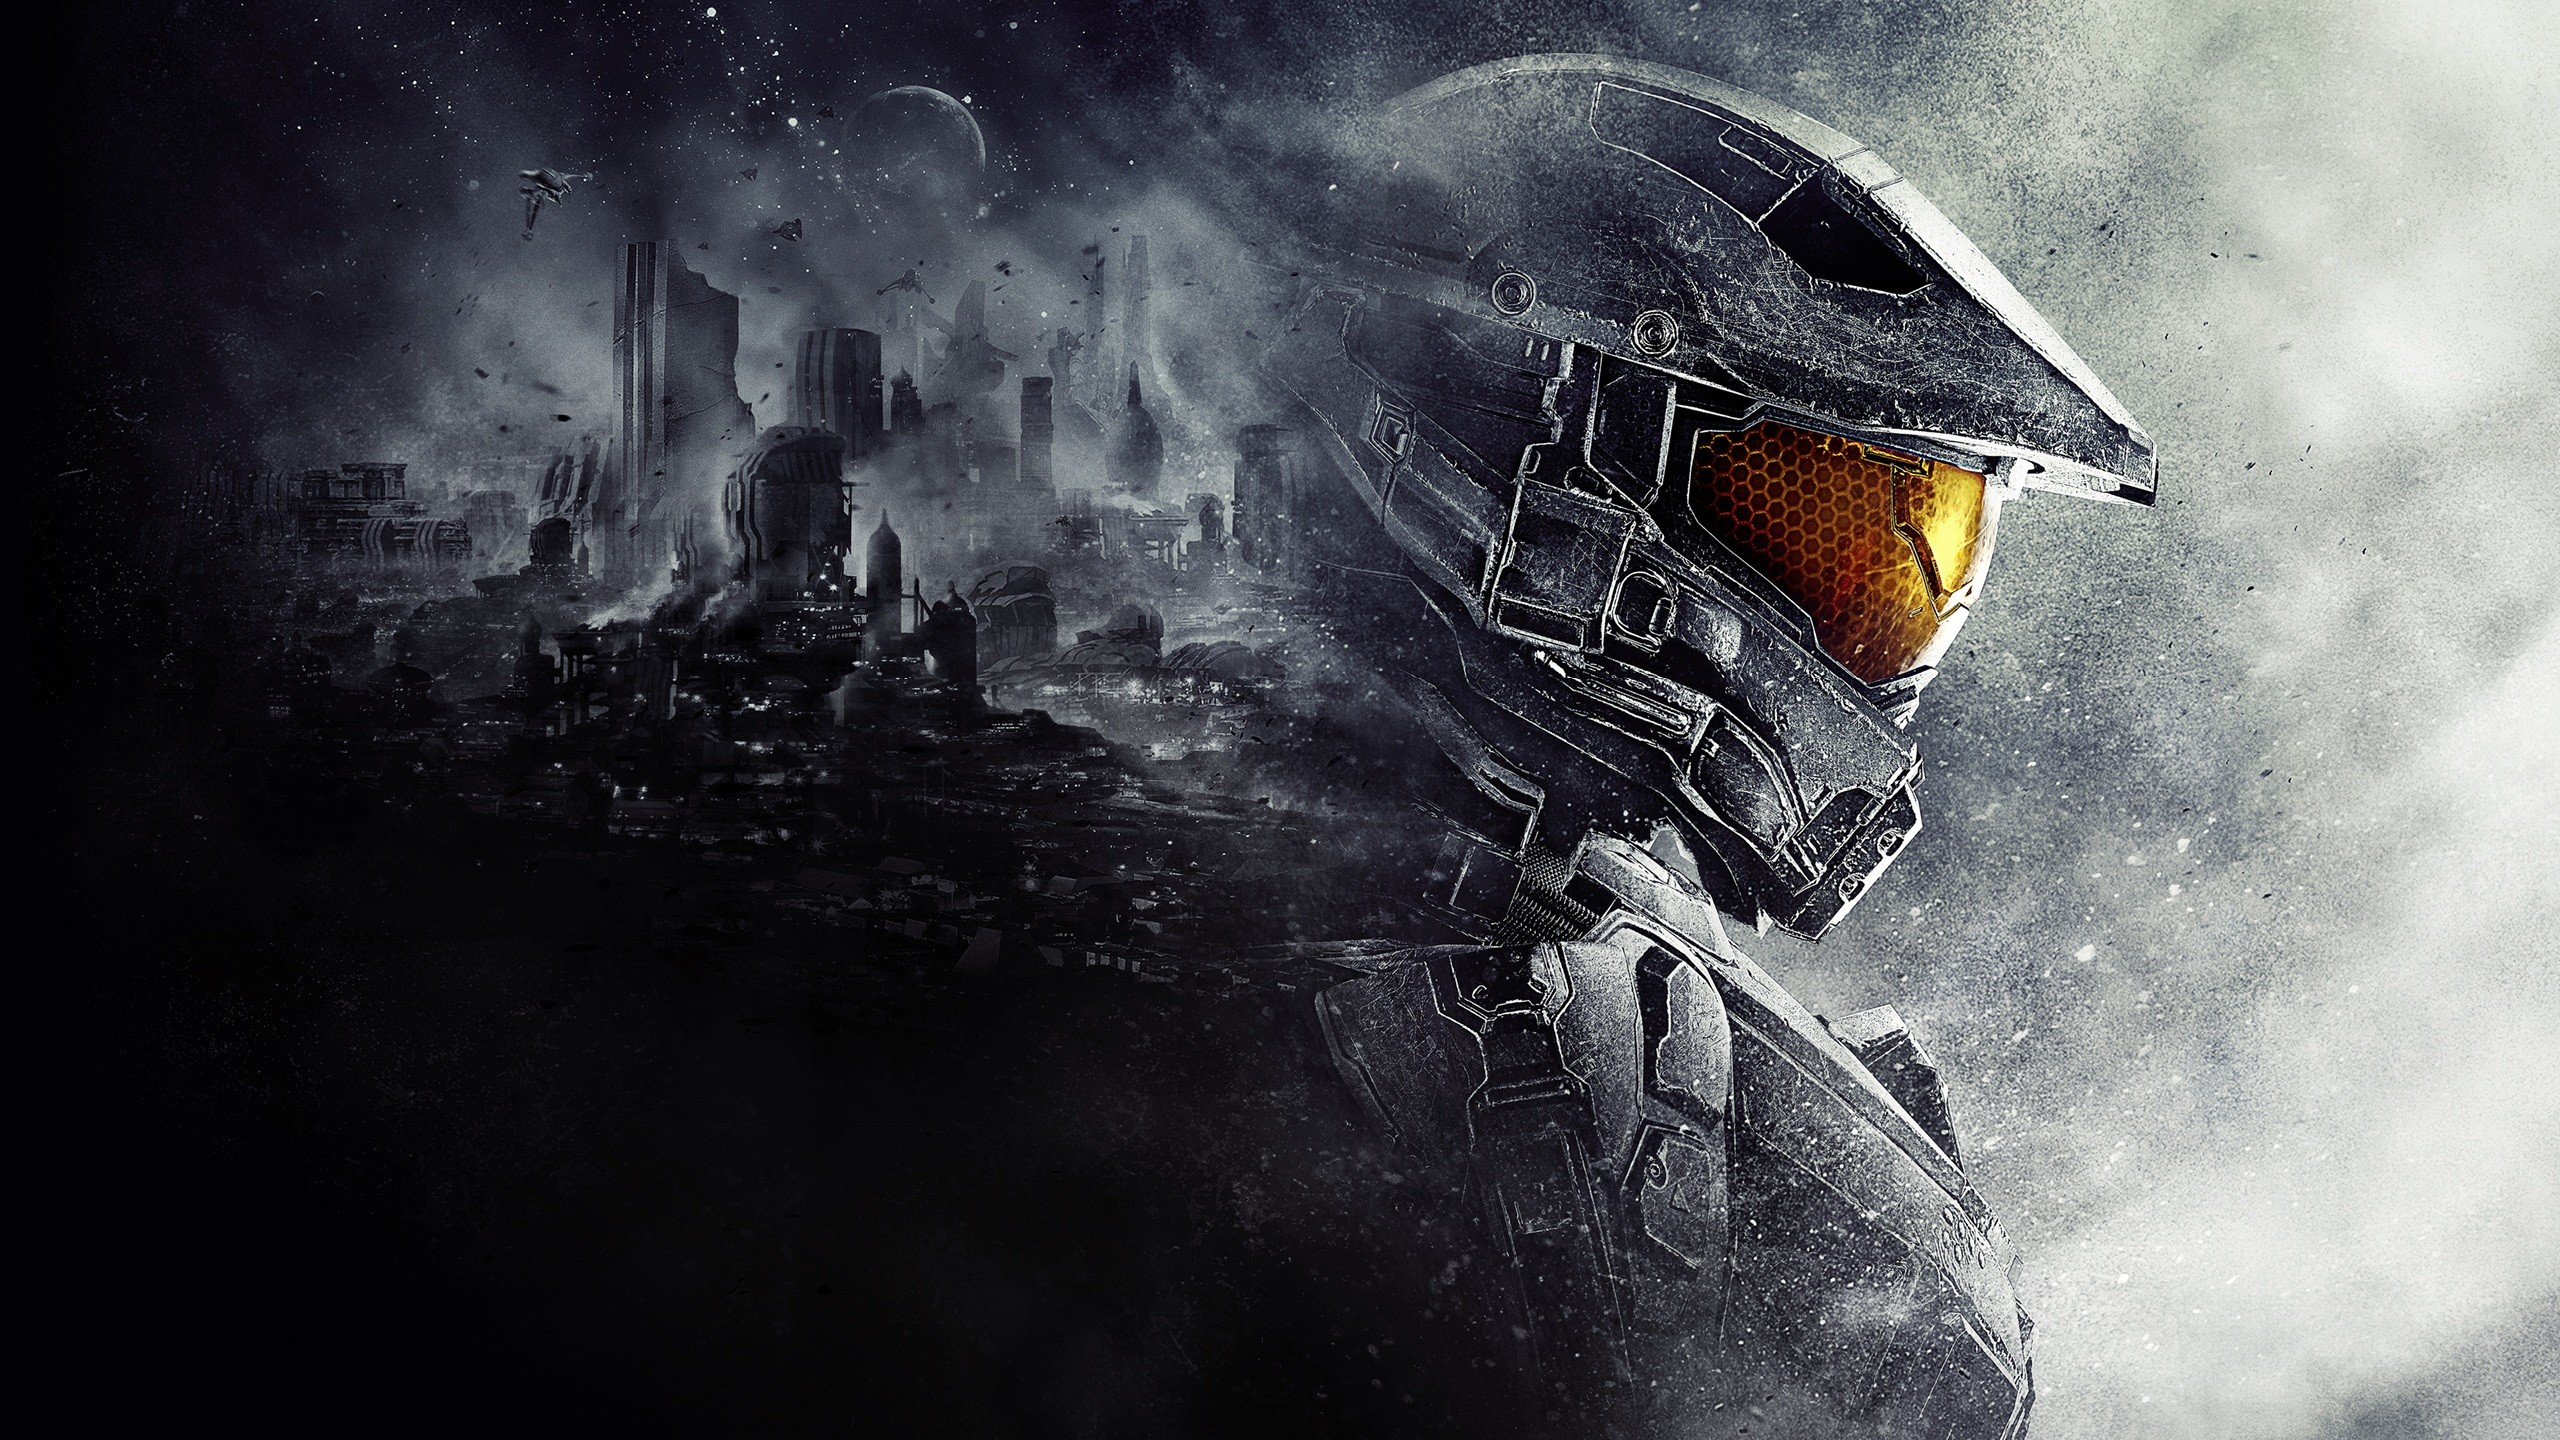 4K Halo Wallpapers 62 images